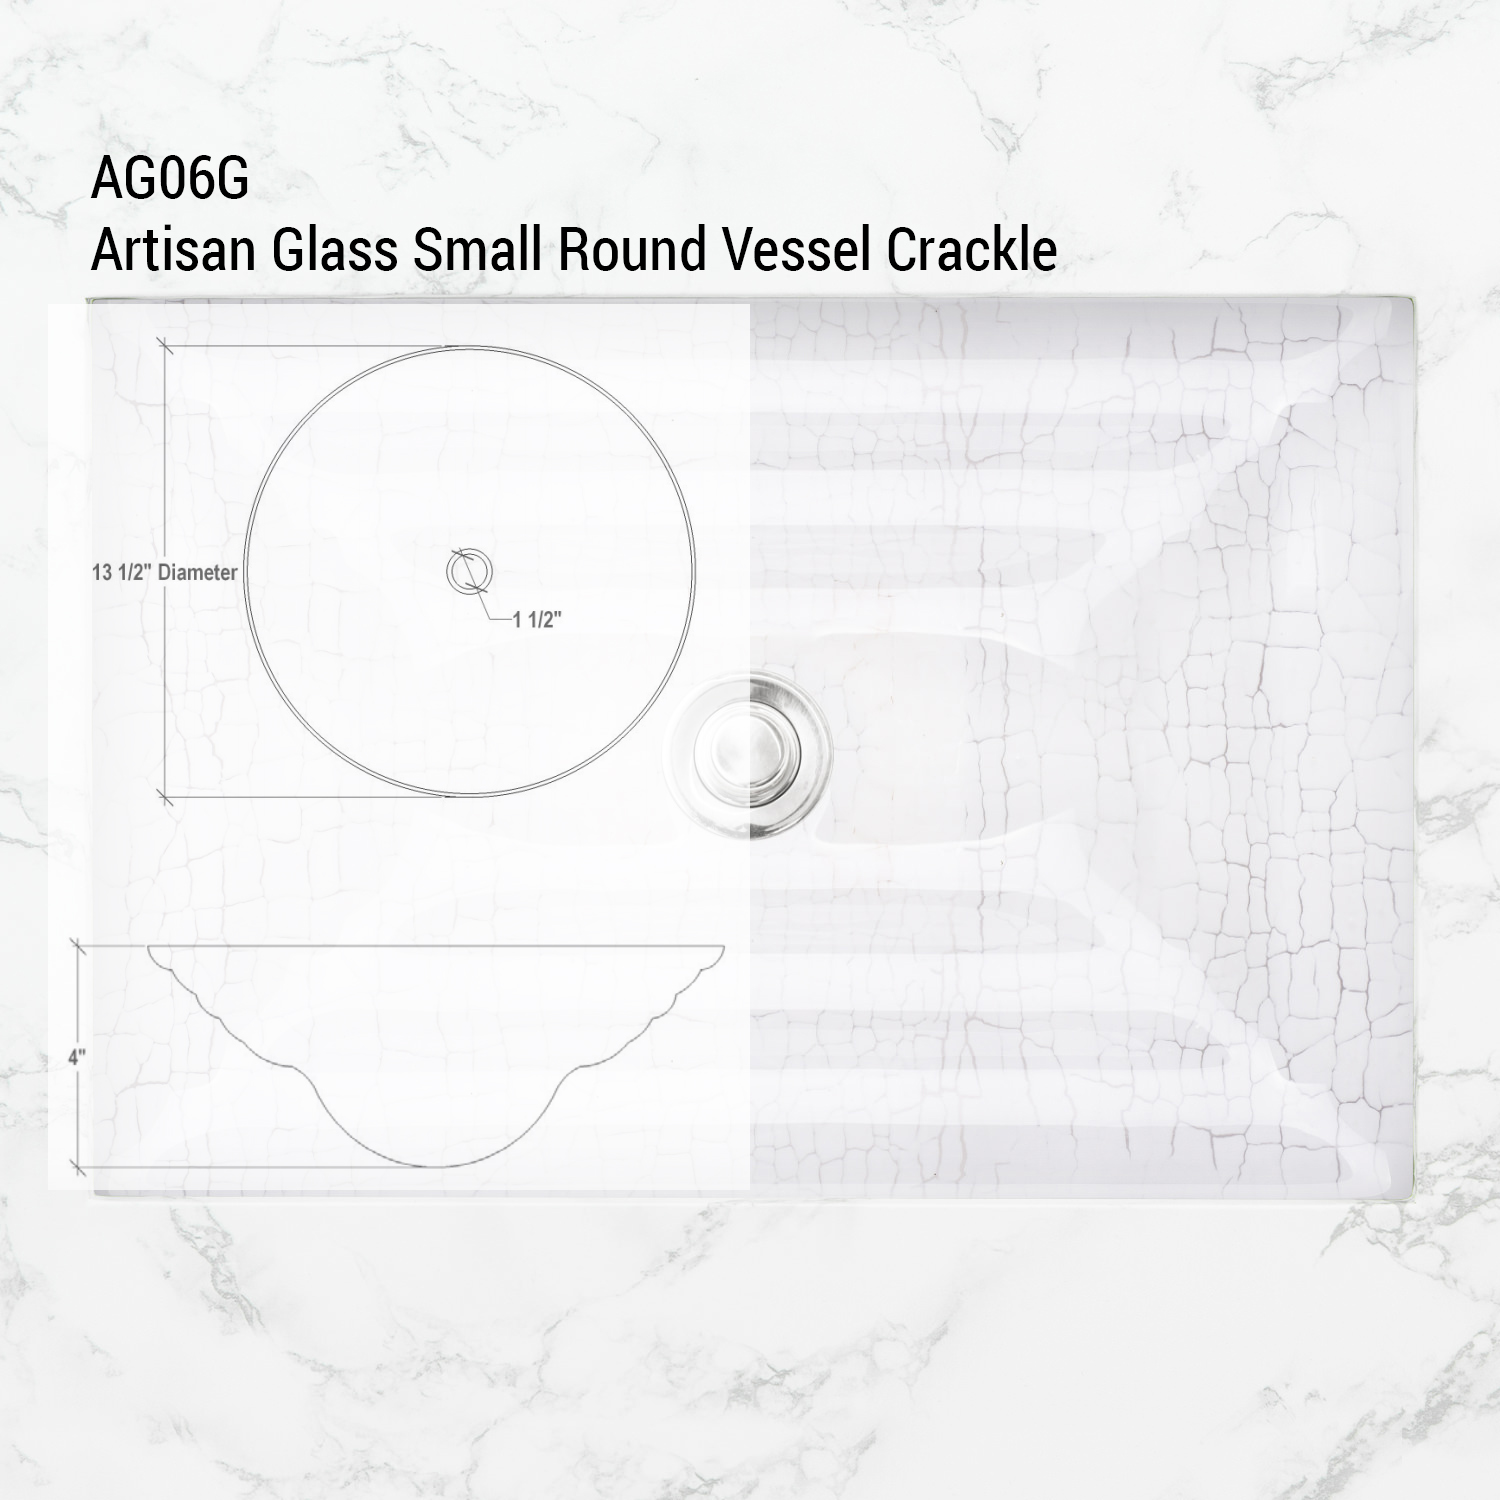 "Linkasink Bathroom Sinks - Artisan Glass - AG06G-01 - CRACKLE Small Round Vessel - White + Clear Glass - Vessel Sink - OD: 13.5"" x 4"" - Drain: 1.5"""